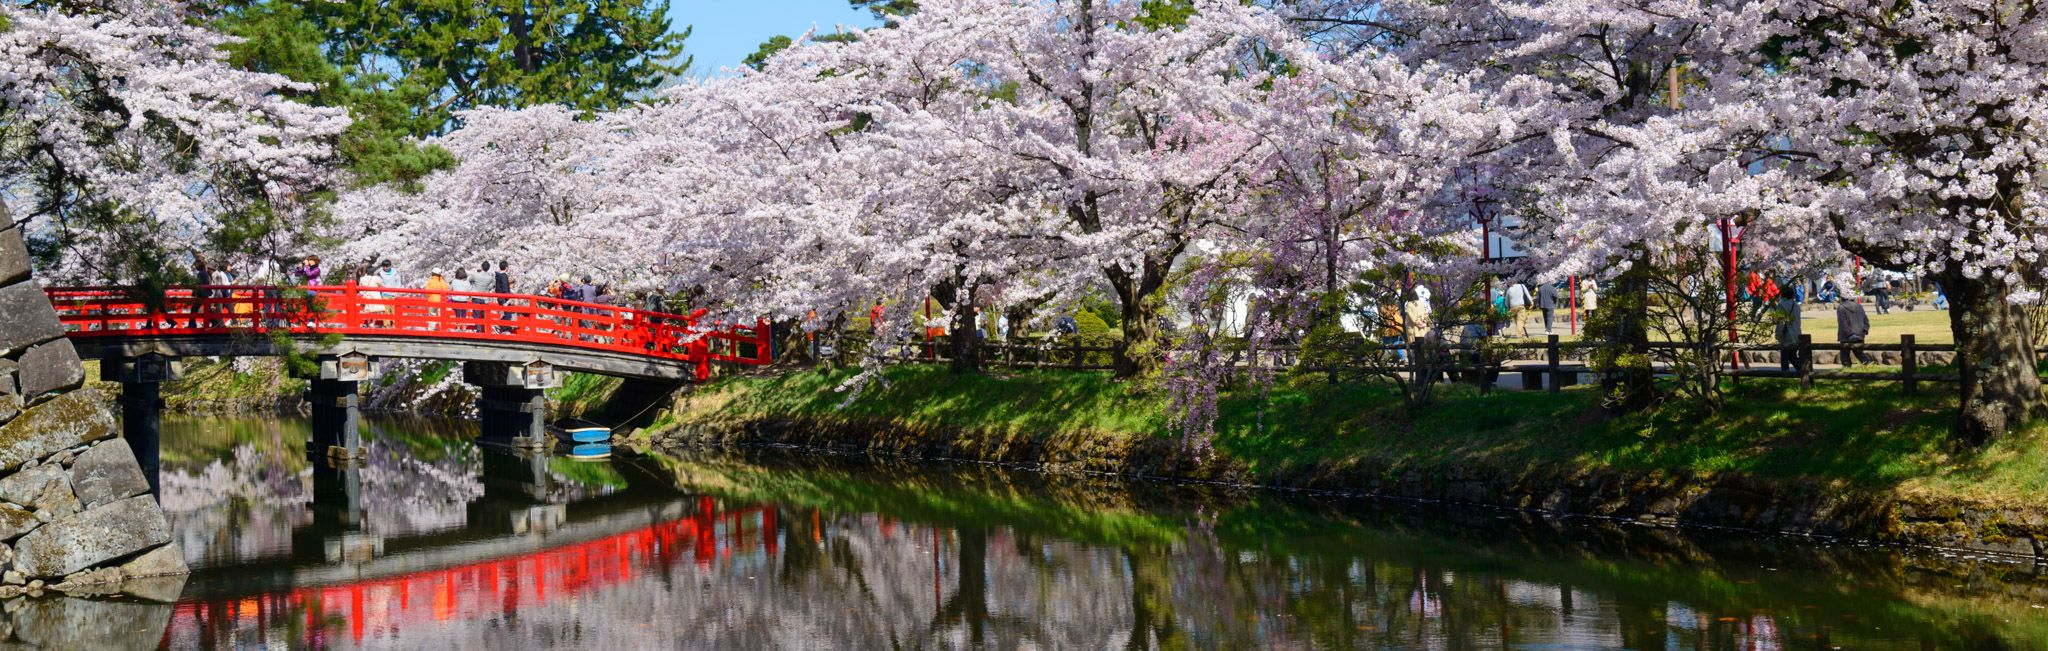 Cherry blossoms at the Hirosaki Castle Park in Japan